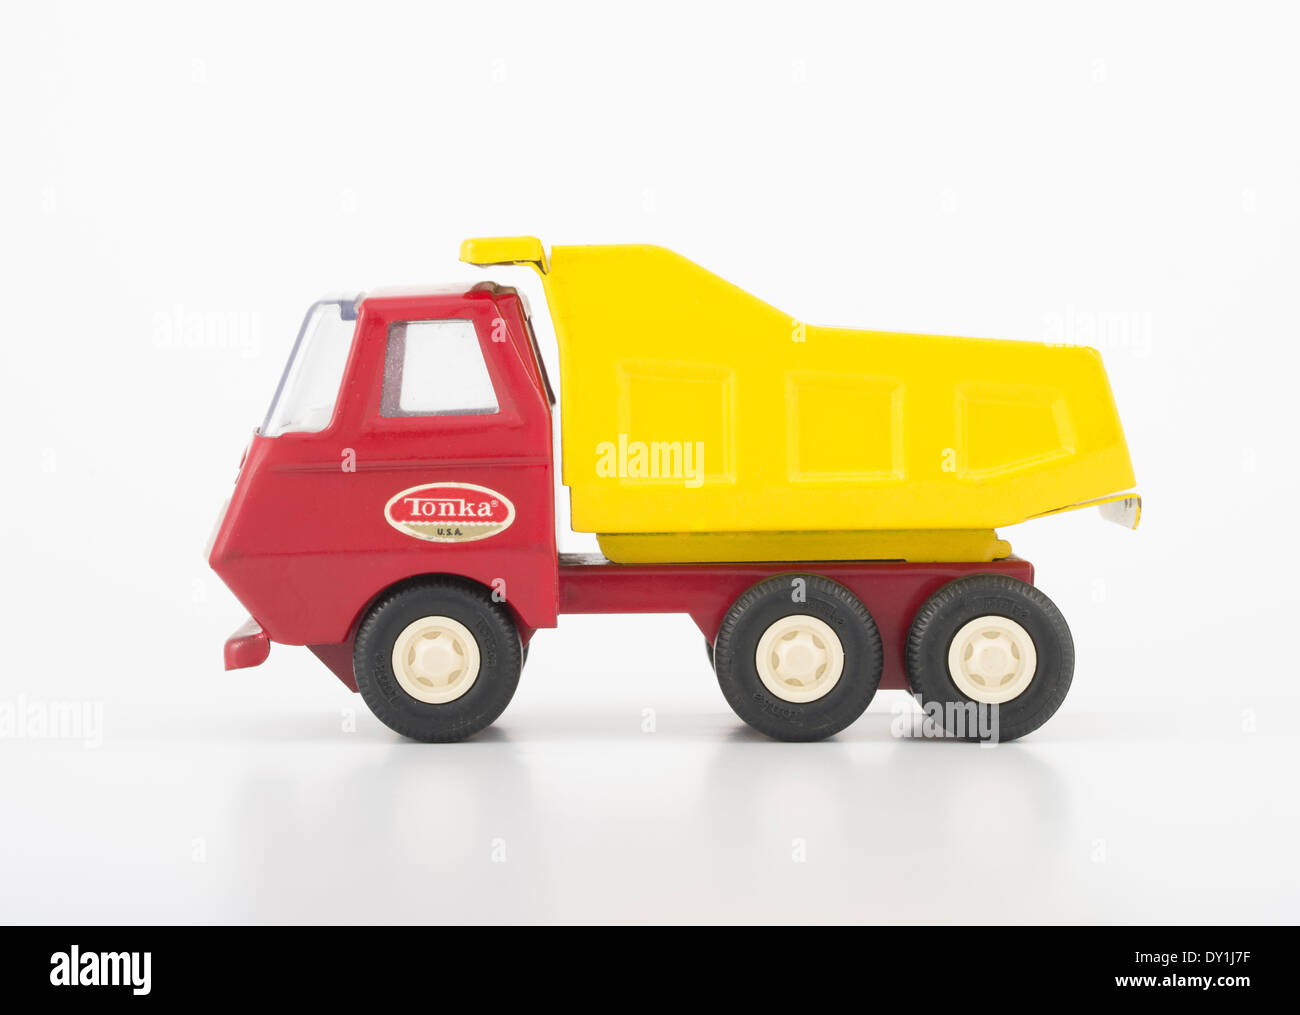 Tonka Toys #535 Red and Yellow Dump Truck 1968 to 70's - Stock Image